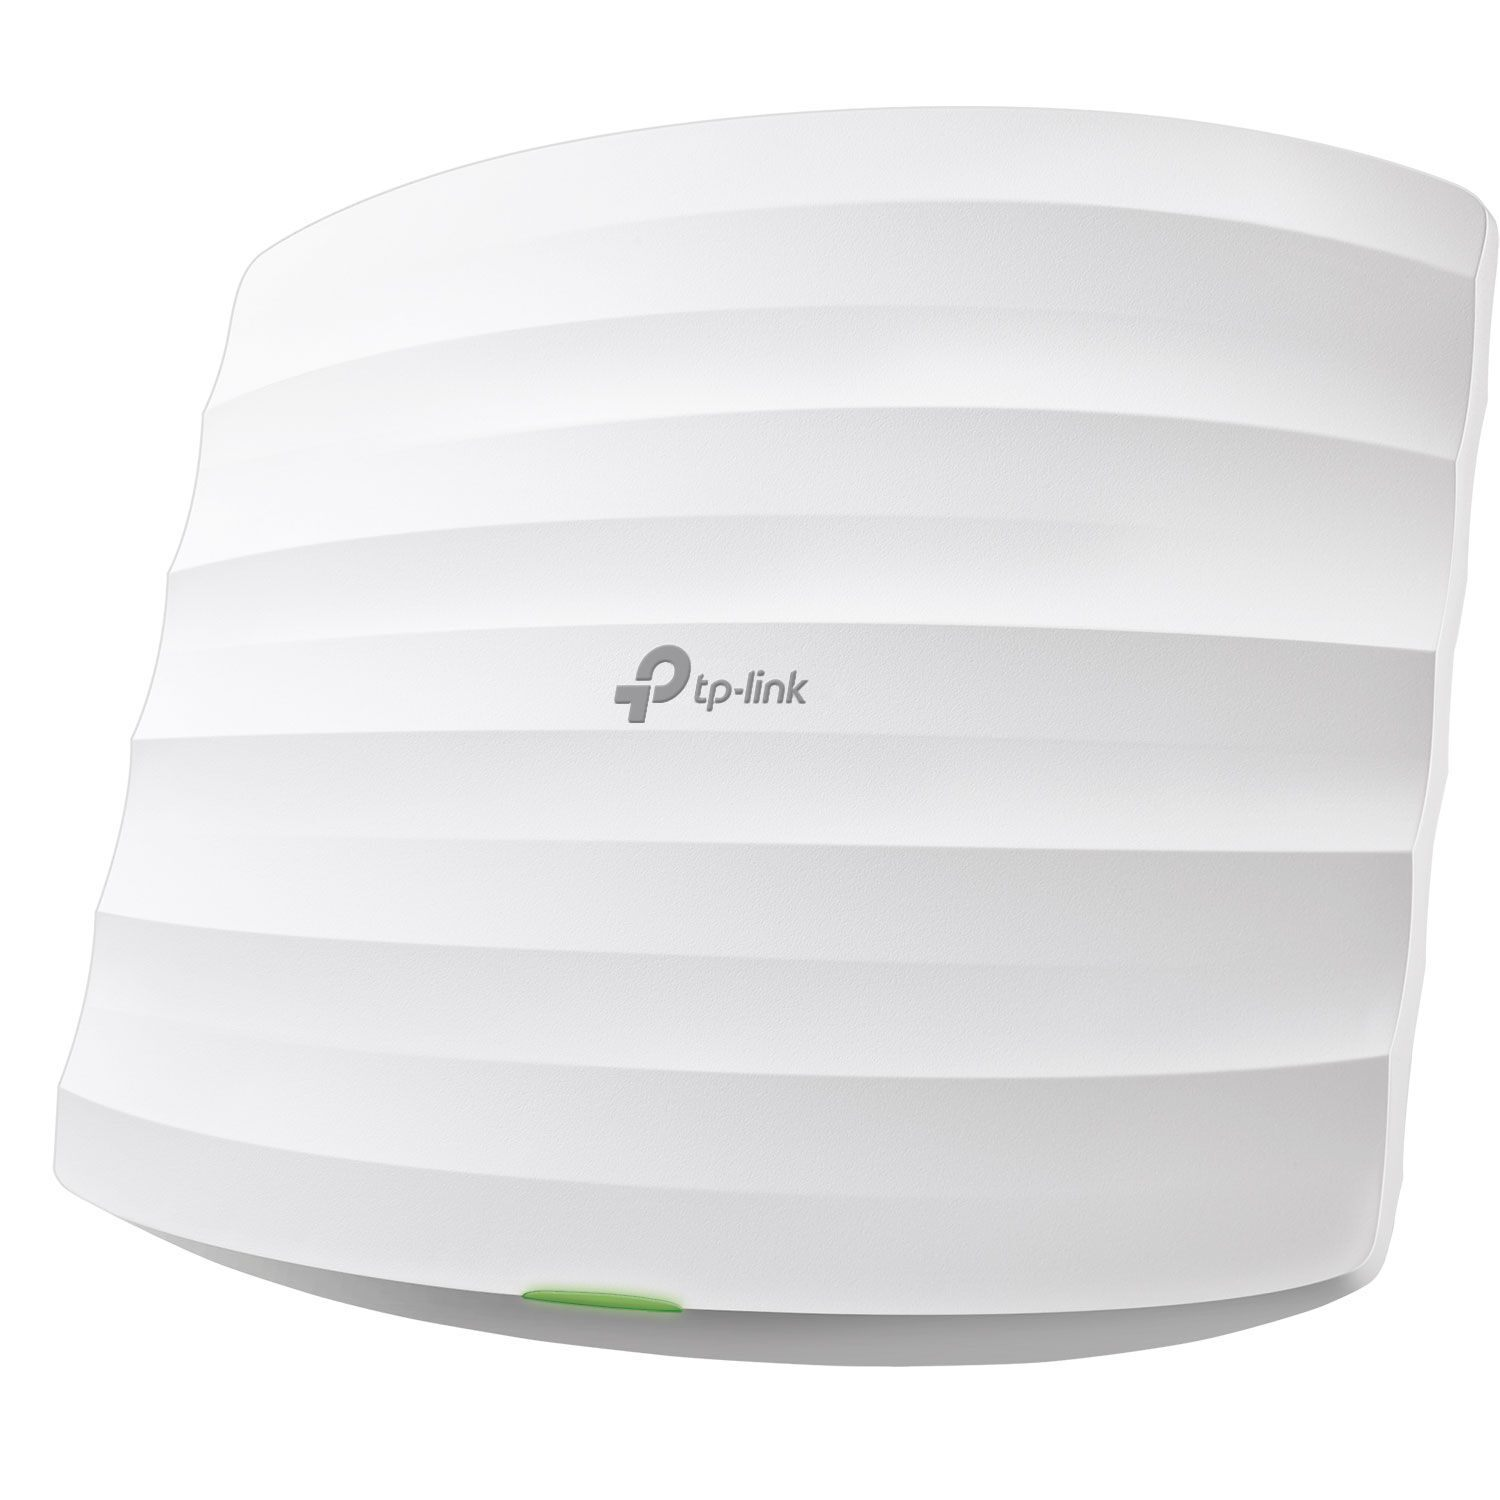 TP-Link EAP245 - AC1750 Wireless Gigabit Access Point 2.4/5GHz